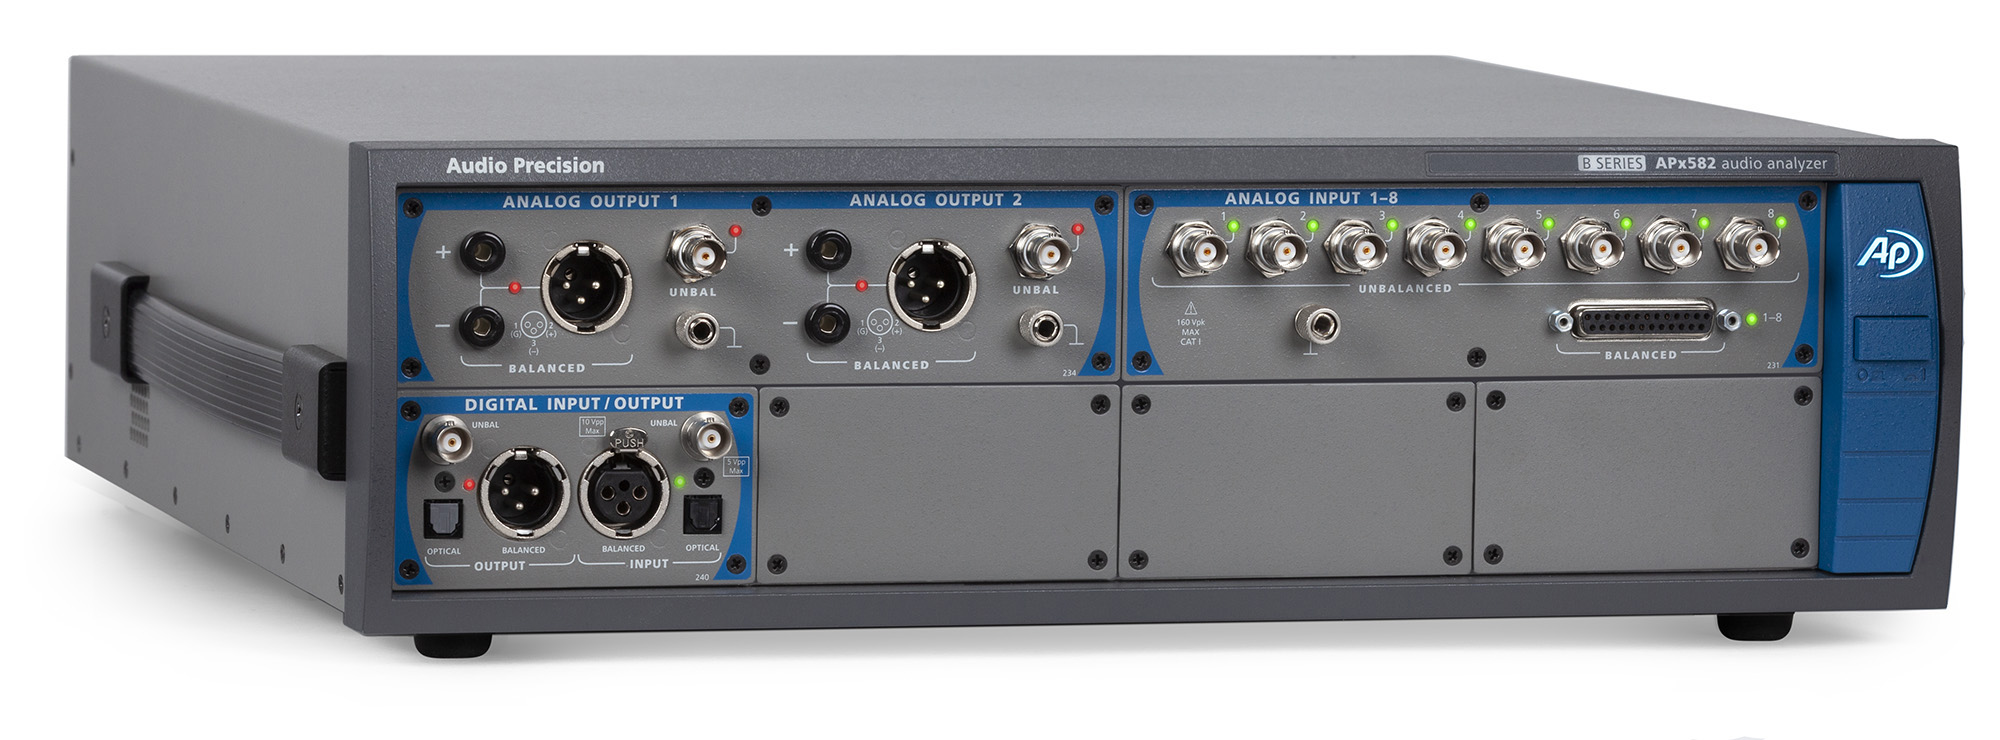 APx582 Audio Analayser front 3-4